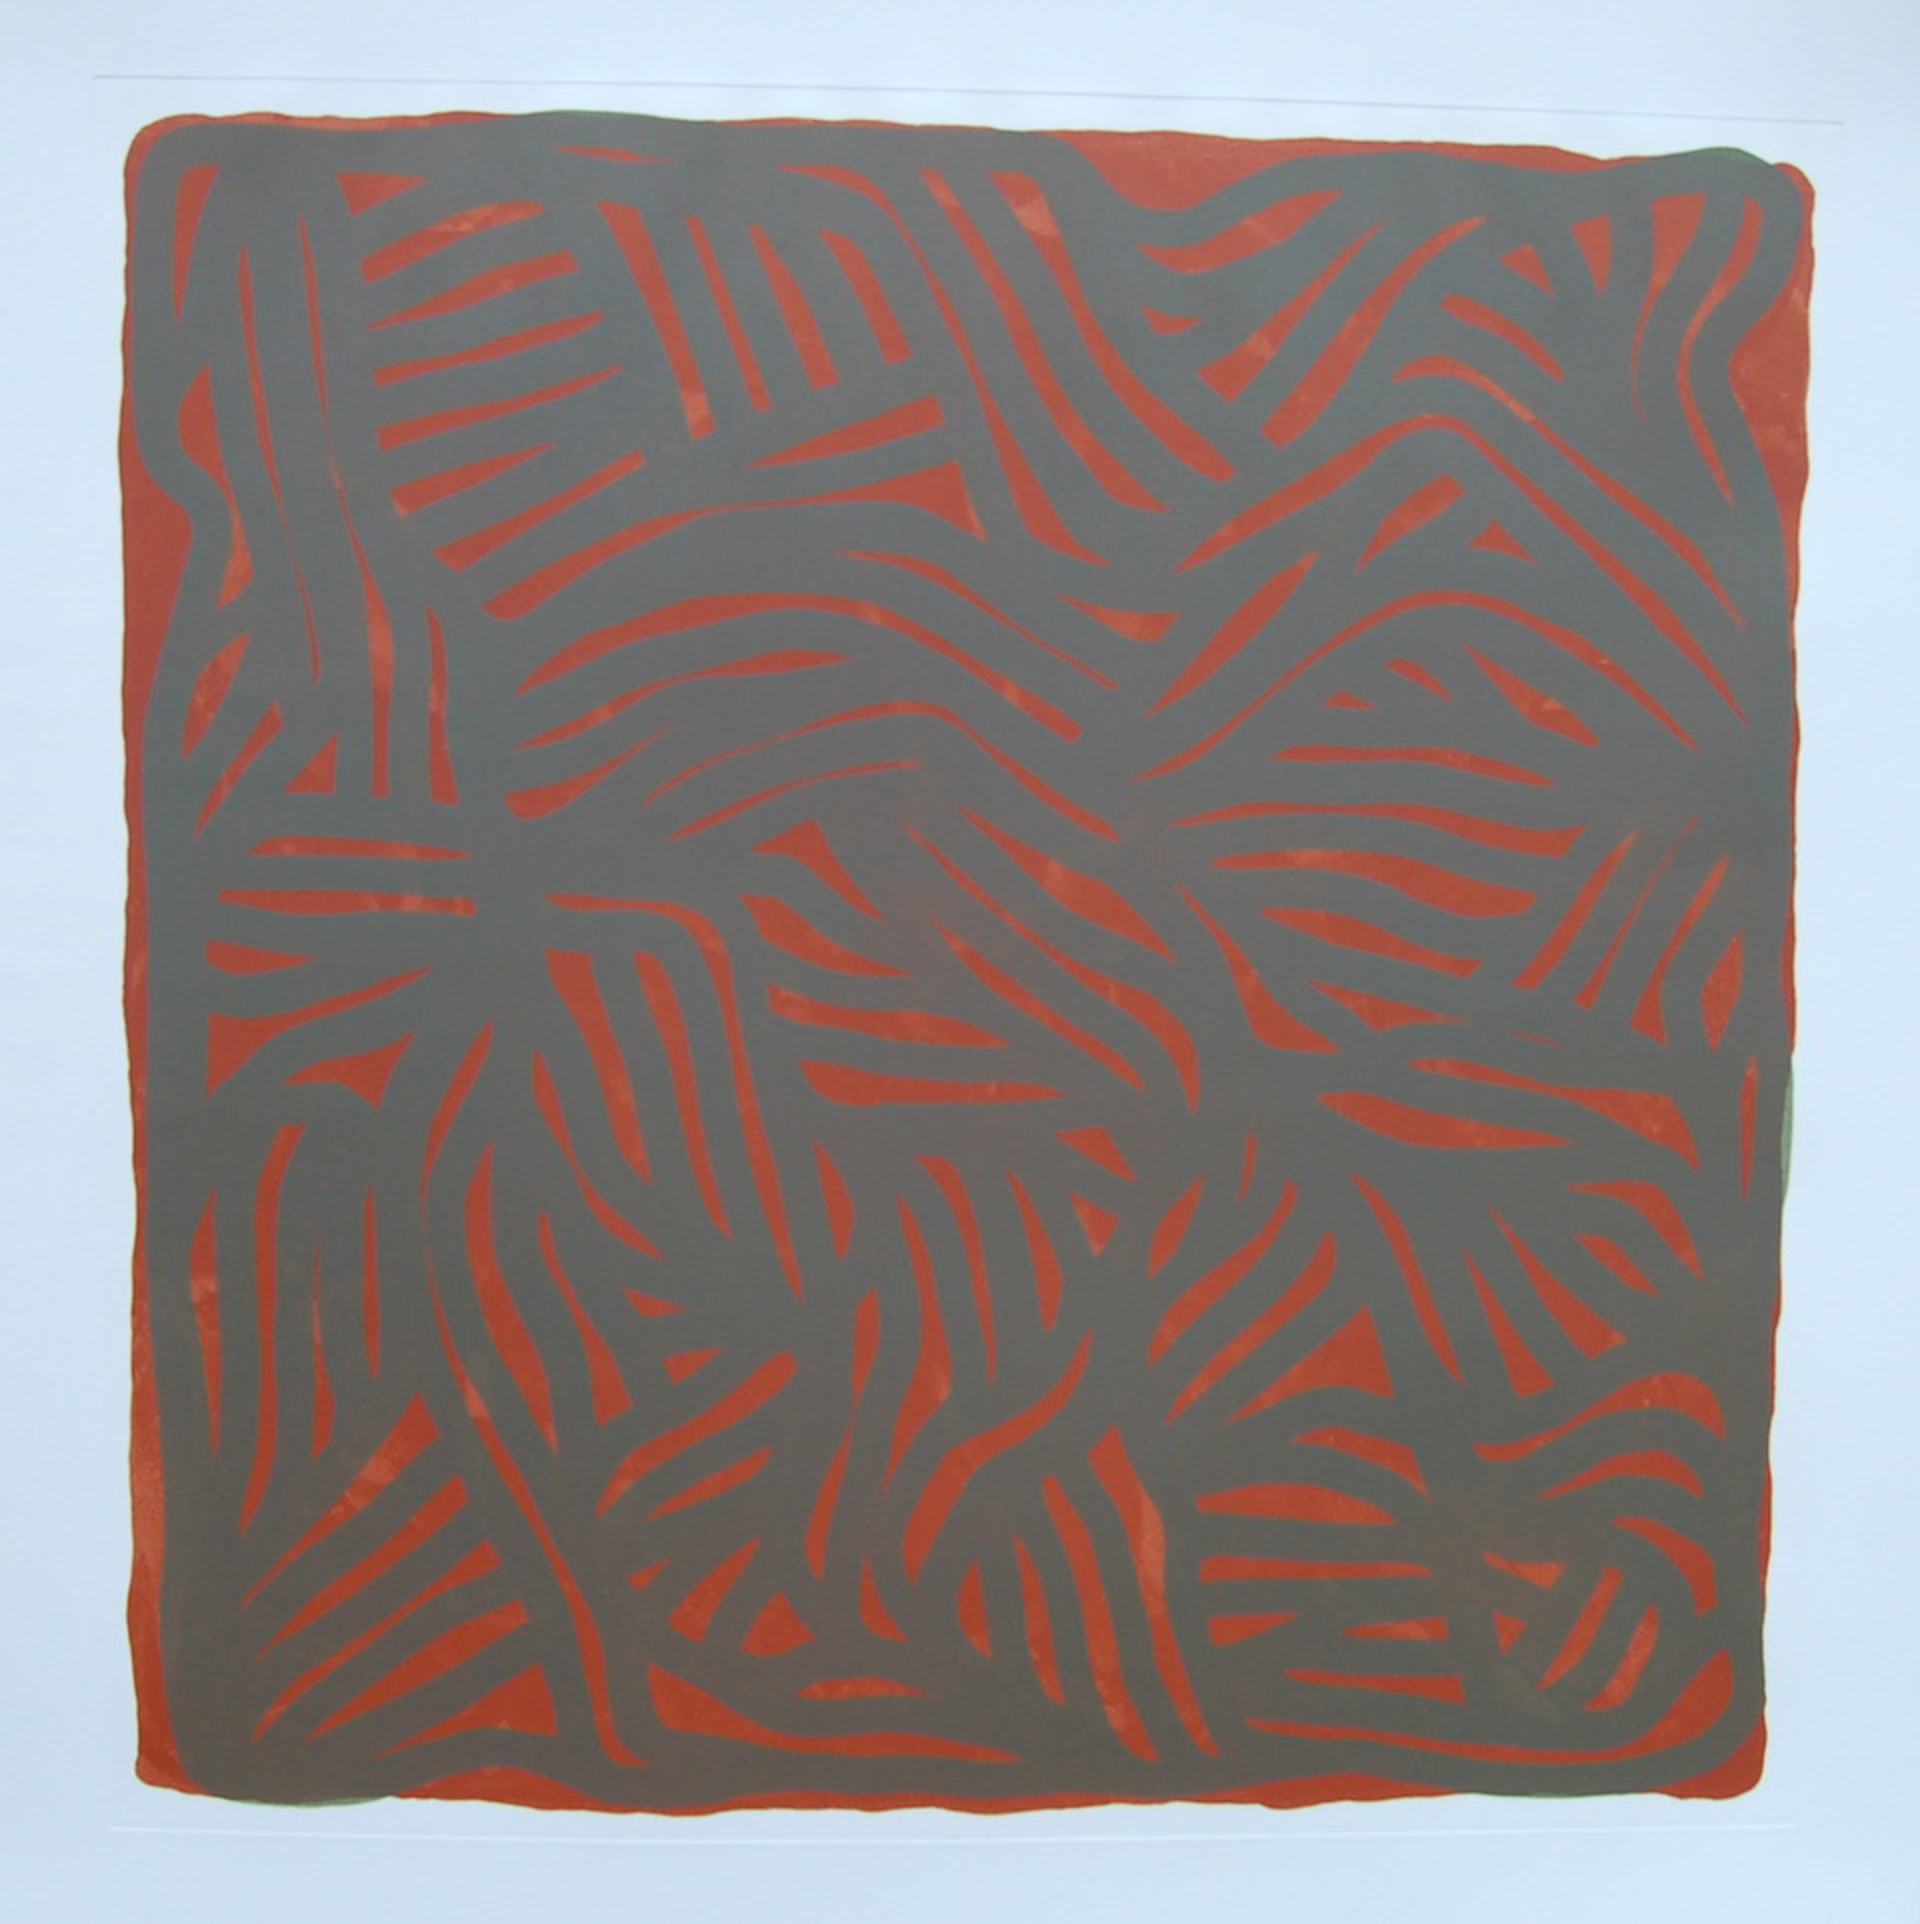 Untitled (Brown) by Sol LeWitt